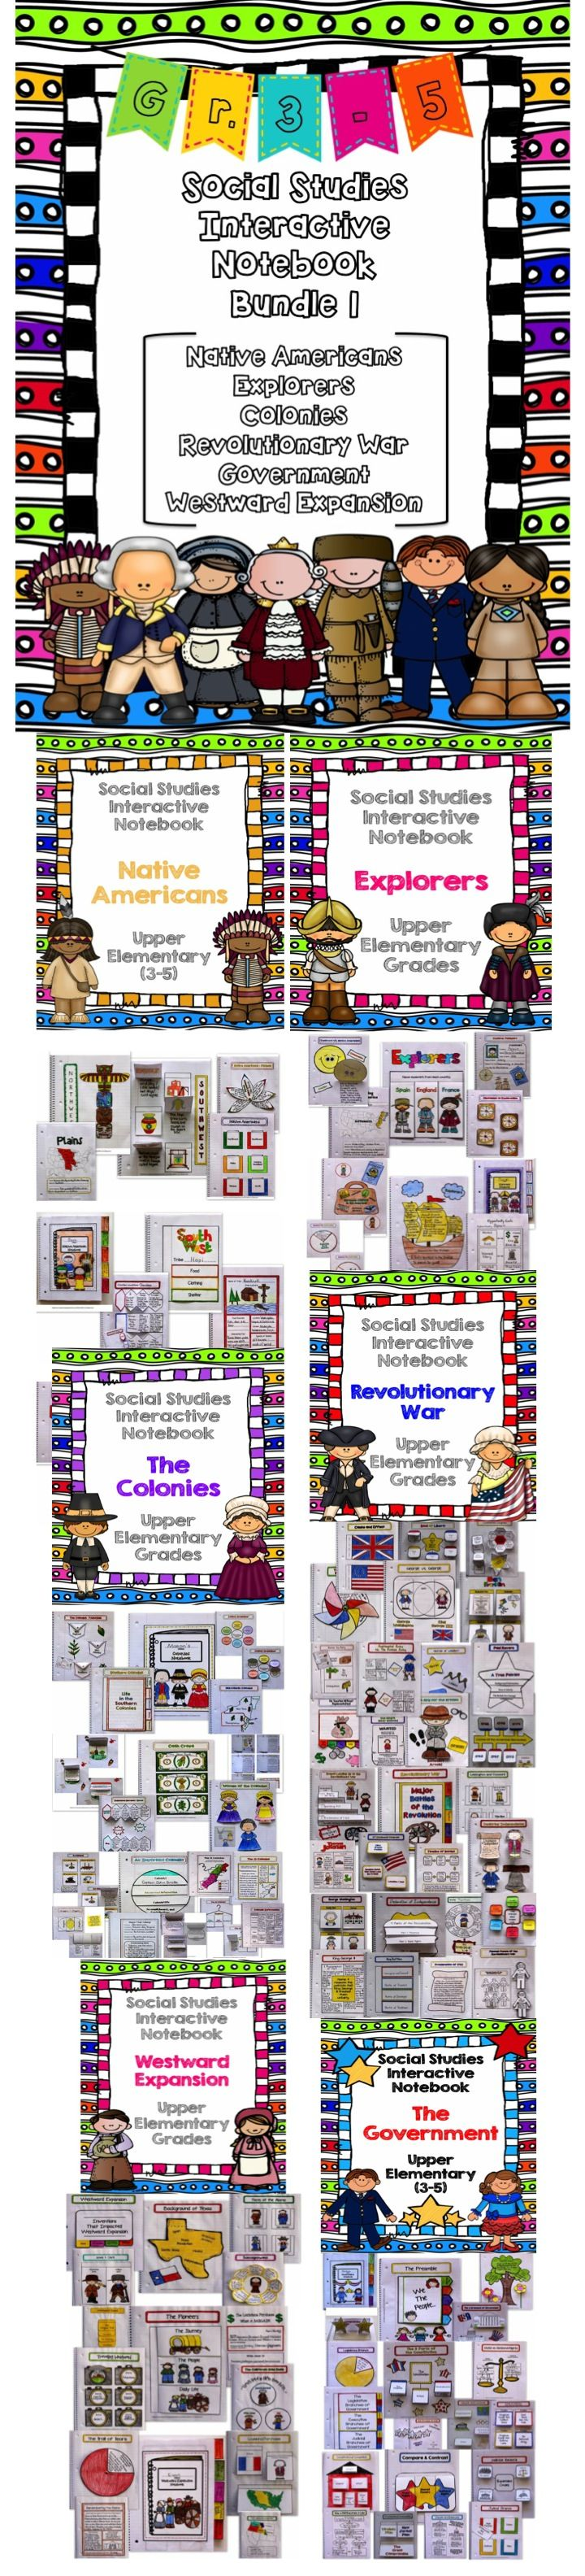 This Social Studies Interactive Notebook Bundle 1 covers Native Americans, Explorers, Colonies, The Revolutionary War, Government, and Western Expansion. This huge interactive bundle makes it easier to plan your Social Studies lessons. All sections of the interactive notebook bundle give you choices of using some or all of the pages. $